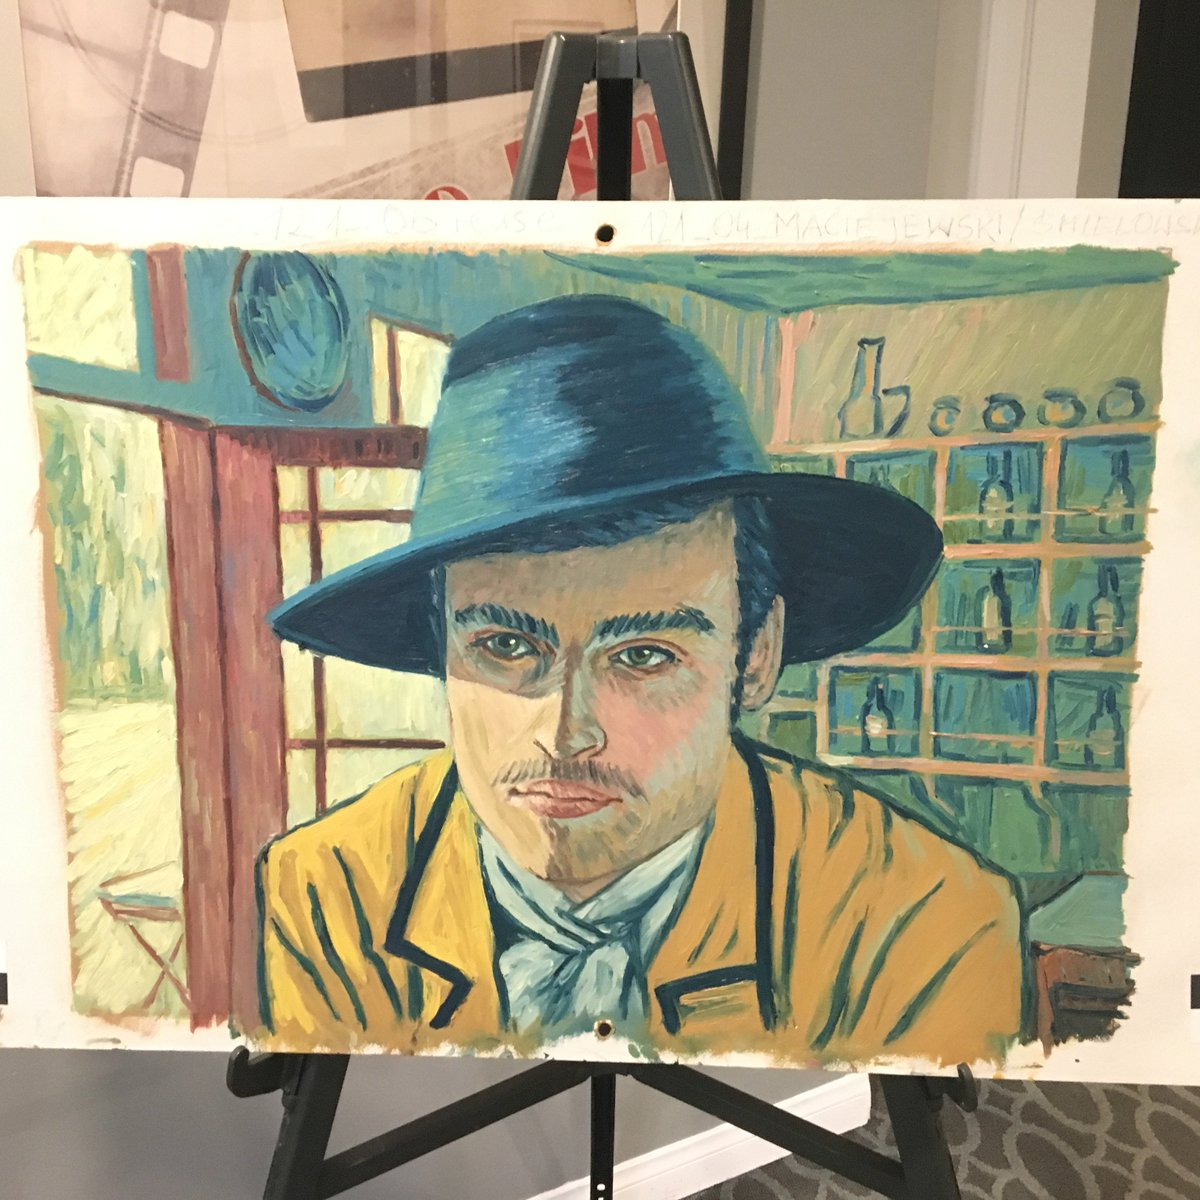 Loving Vincent On Twitter More Original Paintings From Lovingvincent Have Gone On Sale On Our Website Https T Co C7ge2mkopd